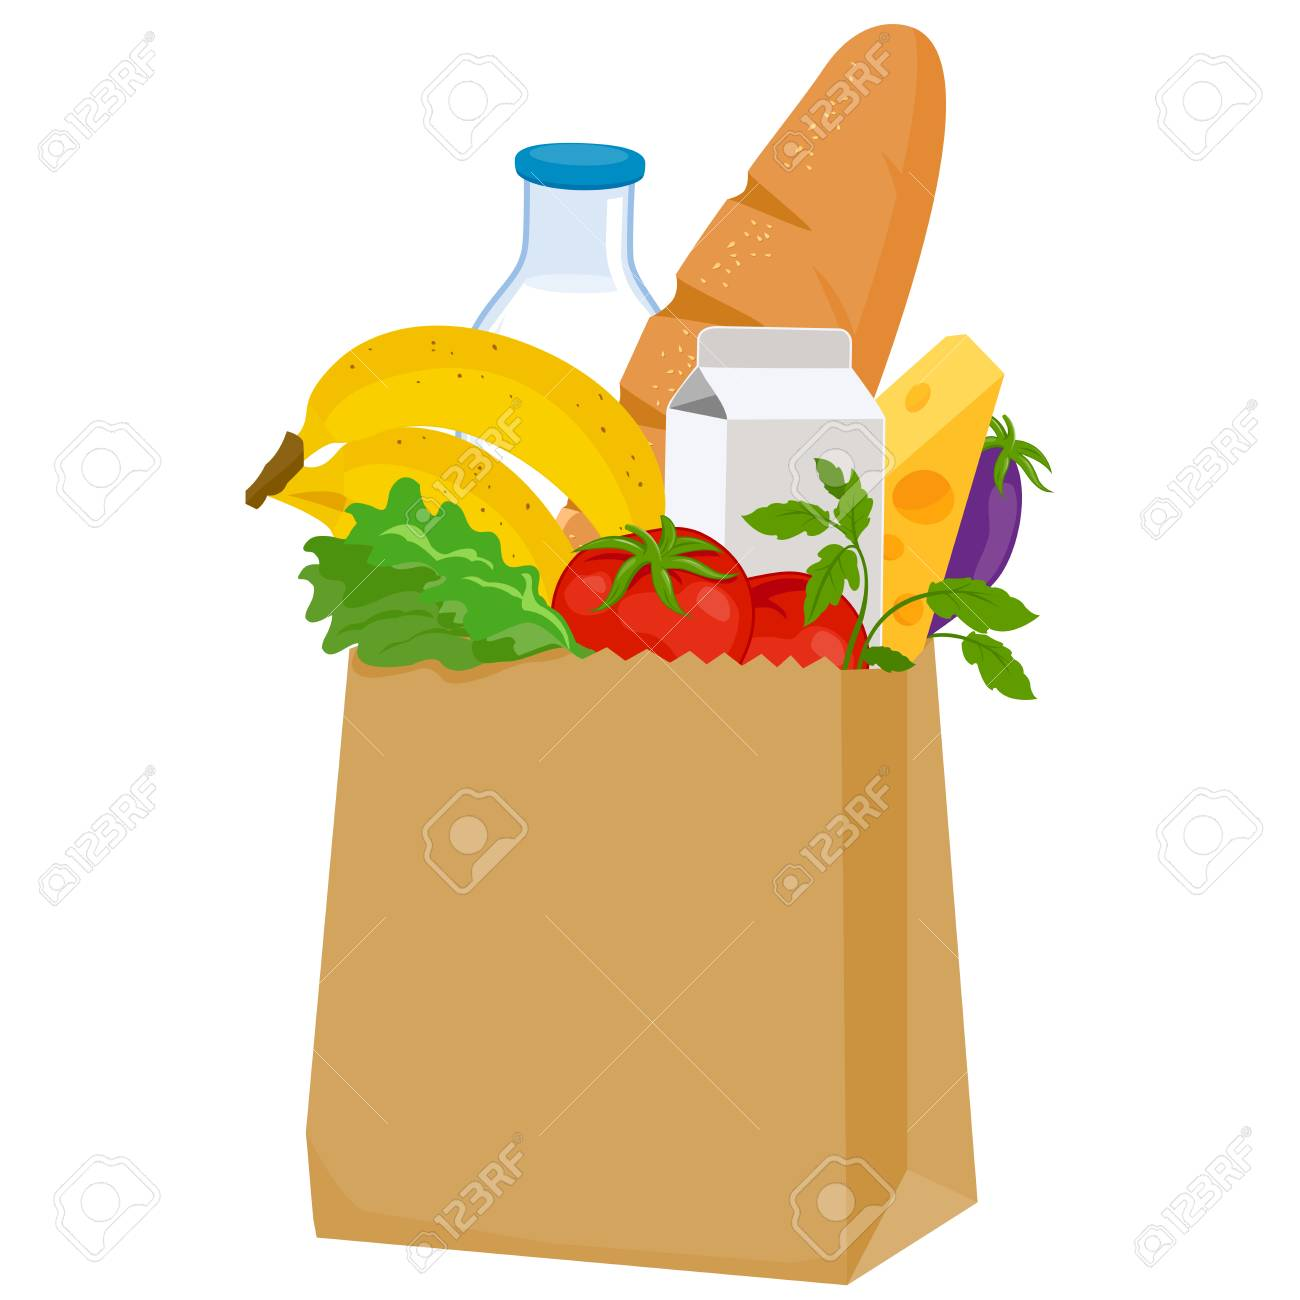 Paper bag with groceries on white background, vector illustration. - 89926421